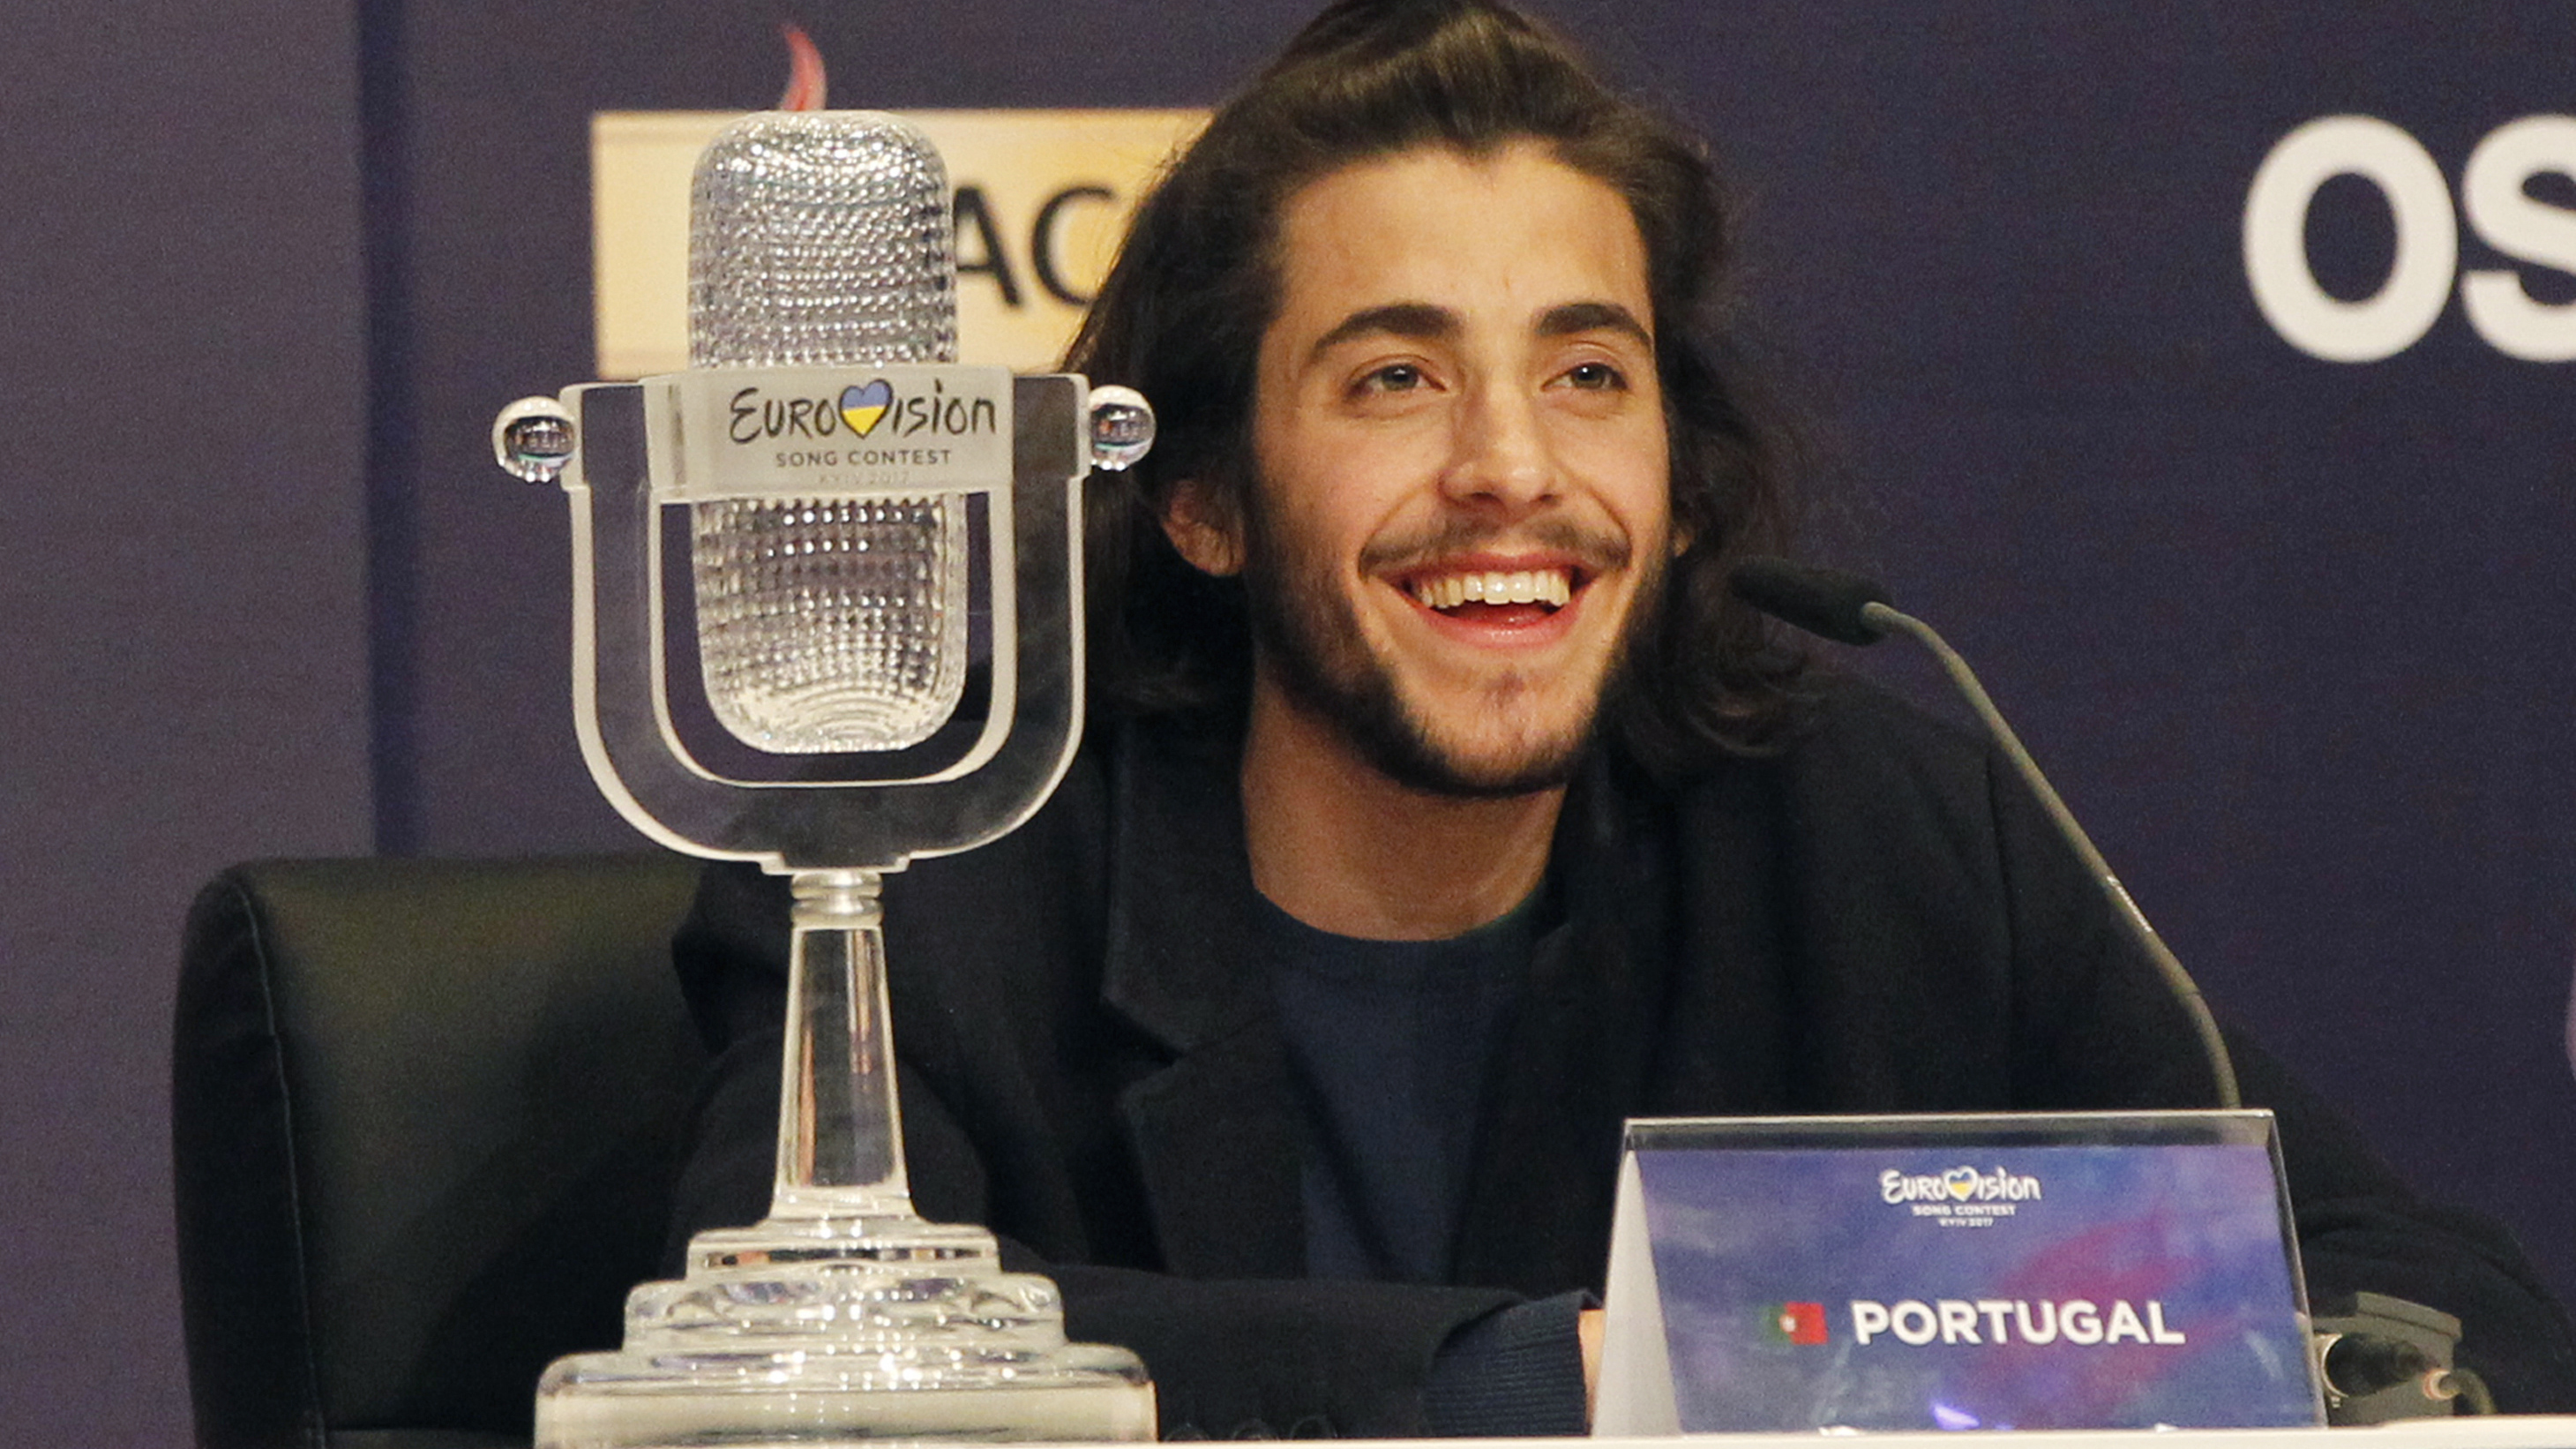 Salvador Sobral Of Portugal Wins Eurovision Song Contest